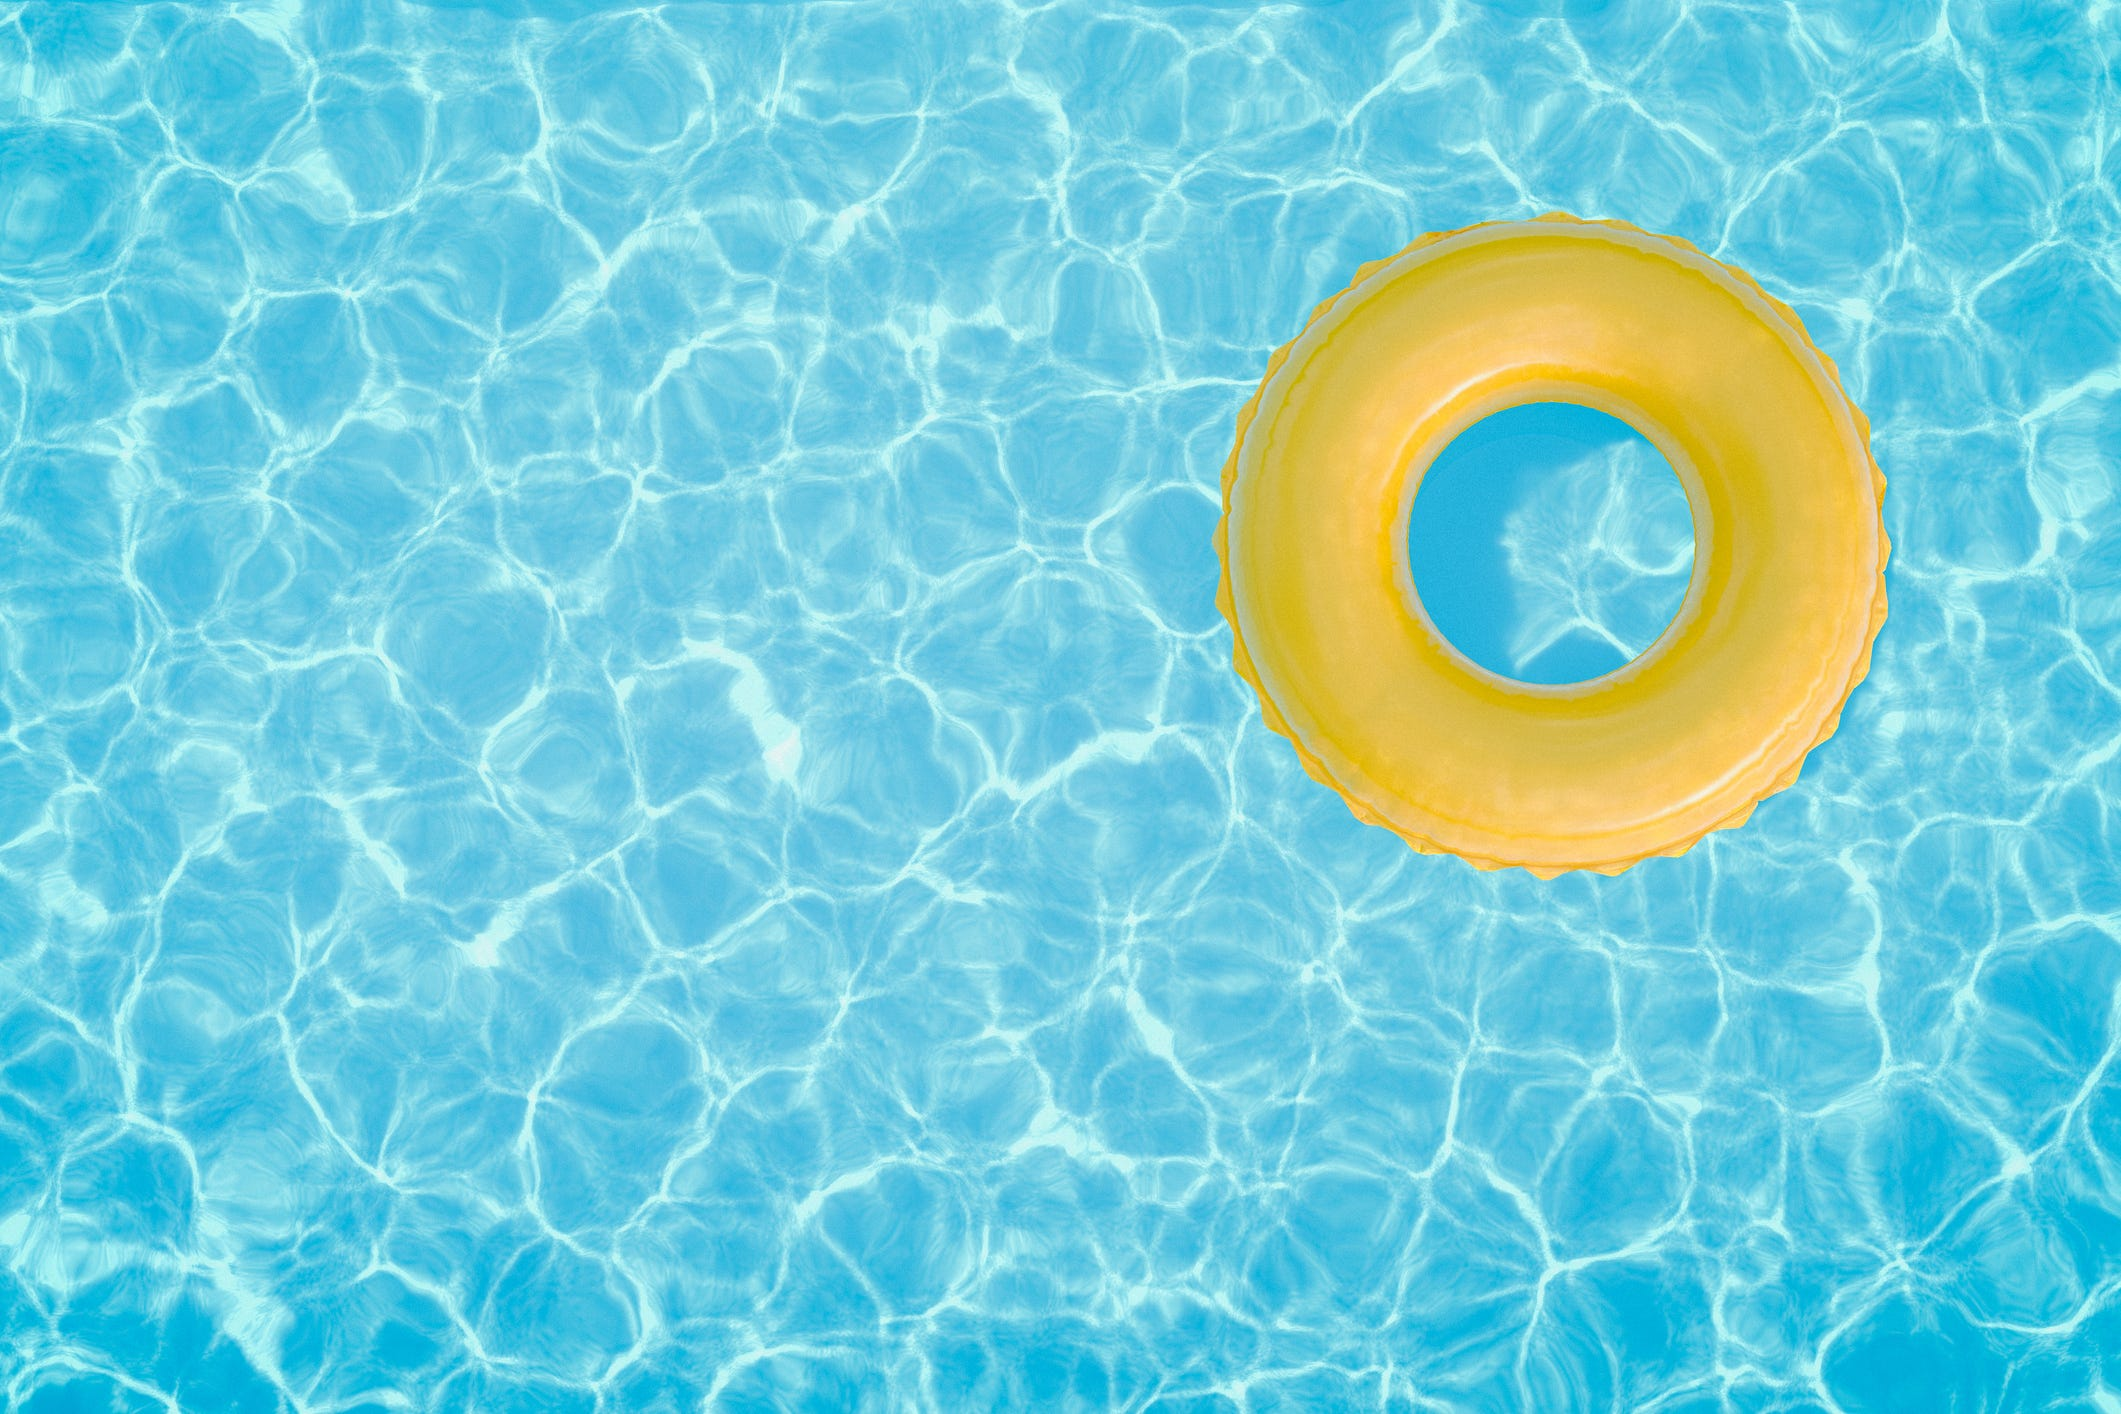 An Image Of A Pool Float In A Swimming Pool. (Photo: BenAkiba, Getty  Images/iStockphoto)